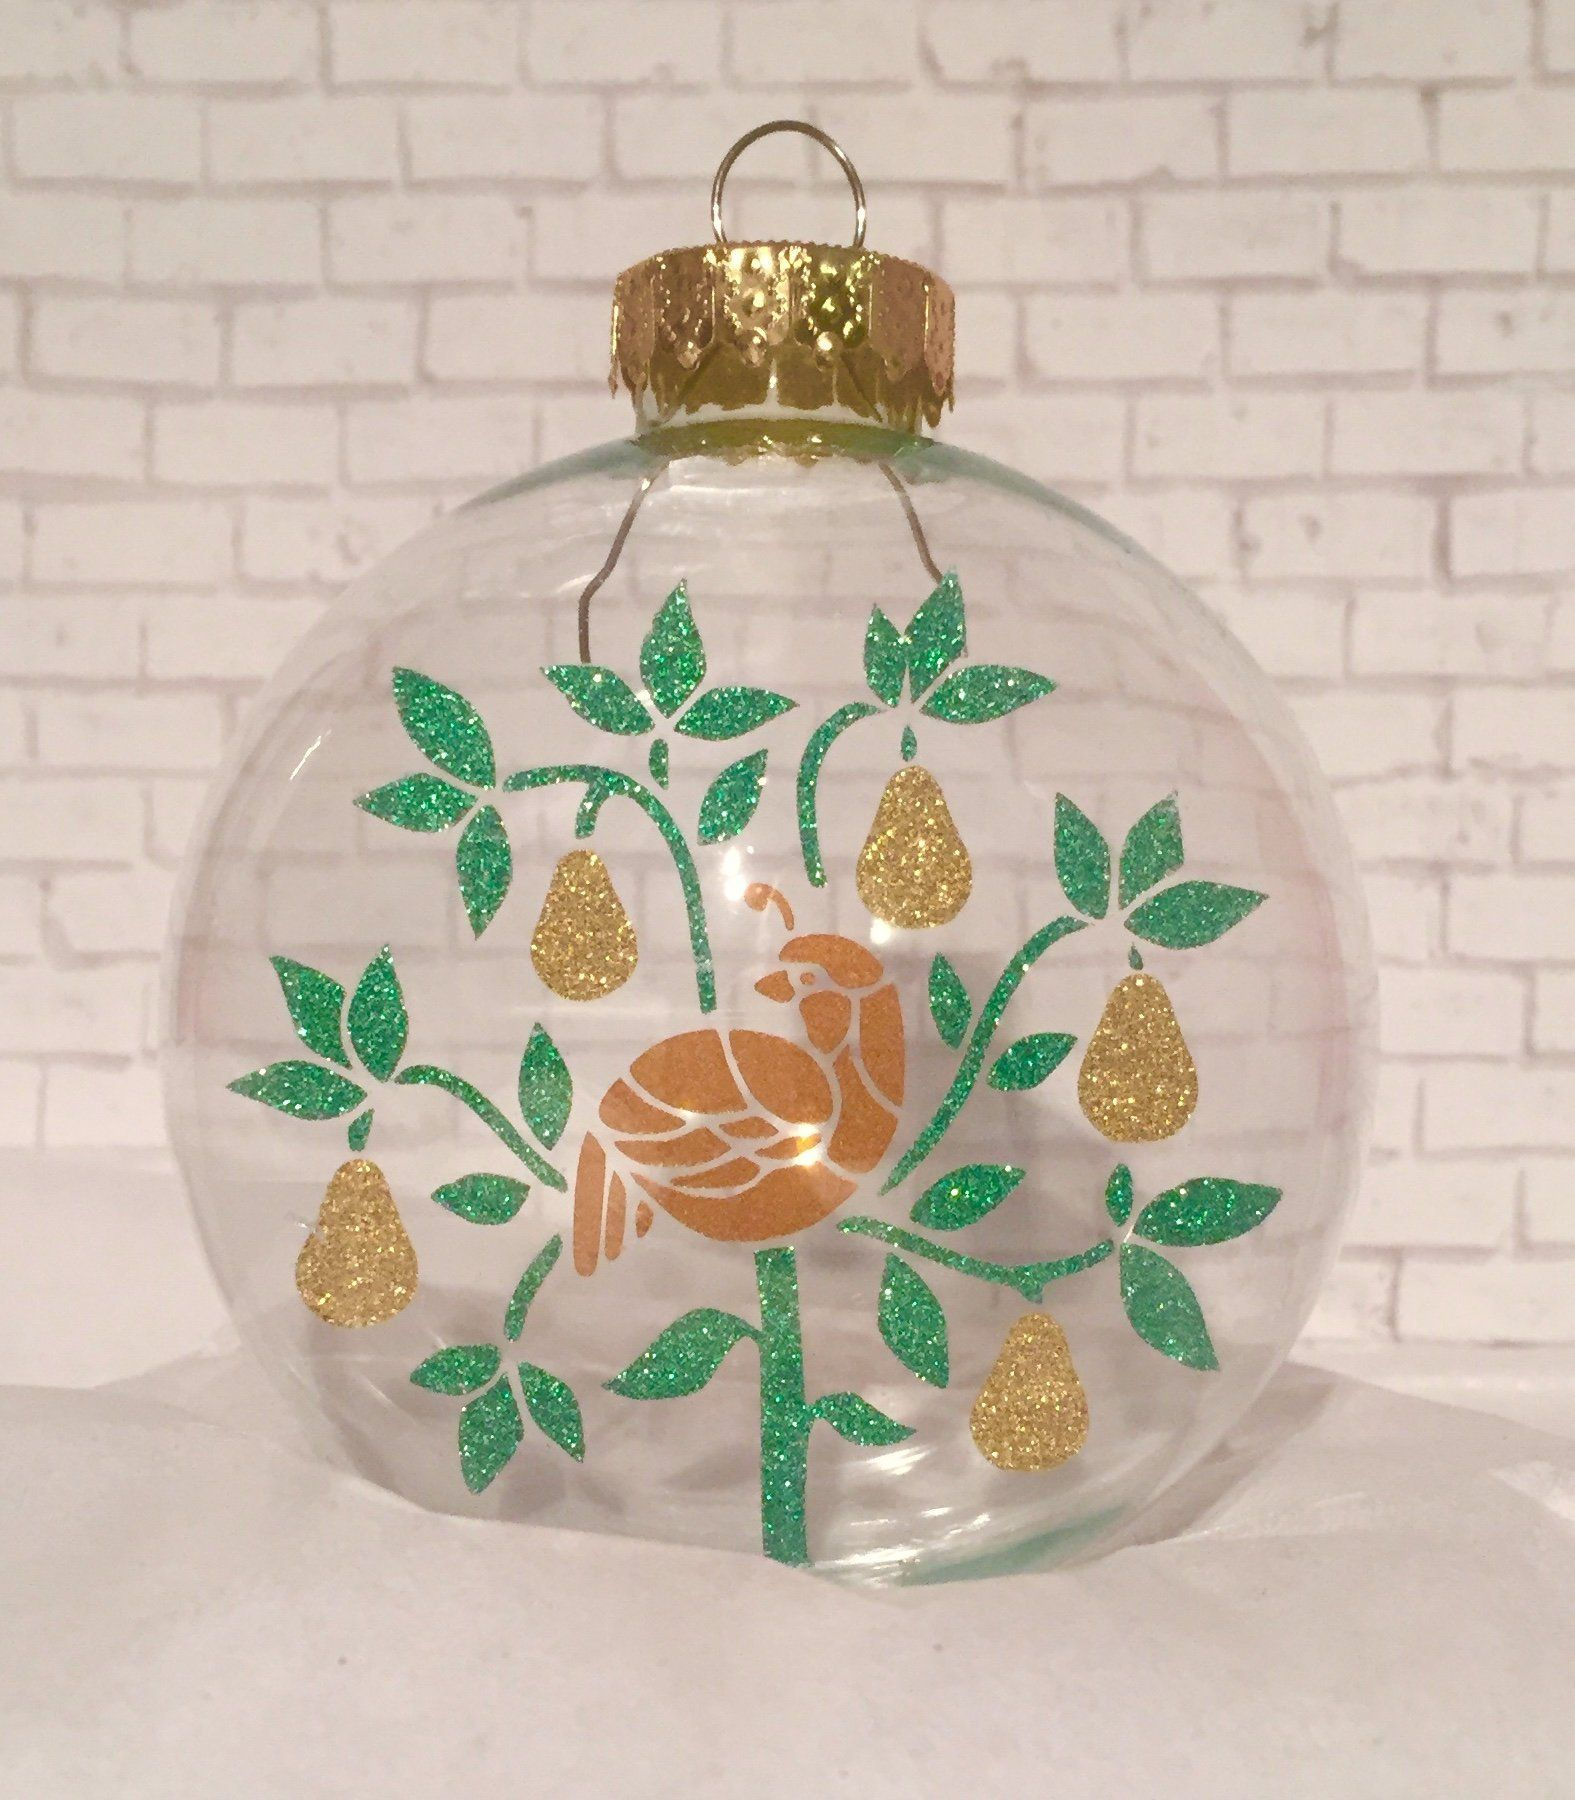 List of Pinterest partridge in a pear tree ornament etsy pictures